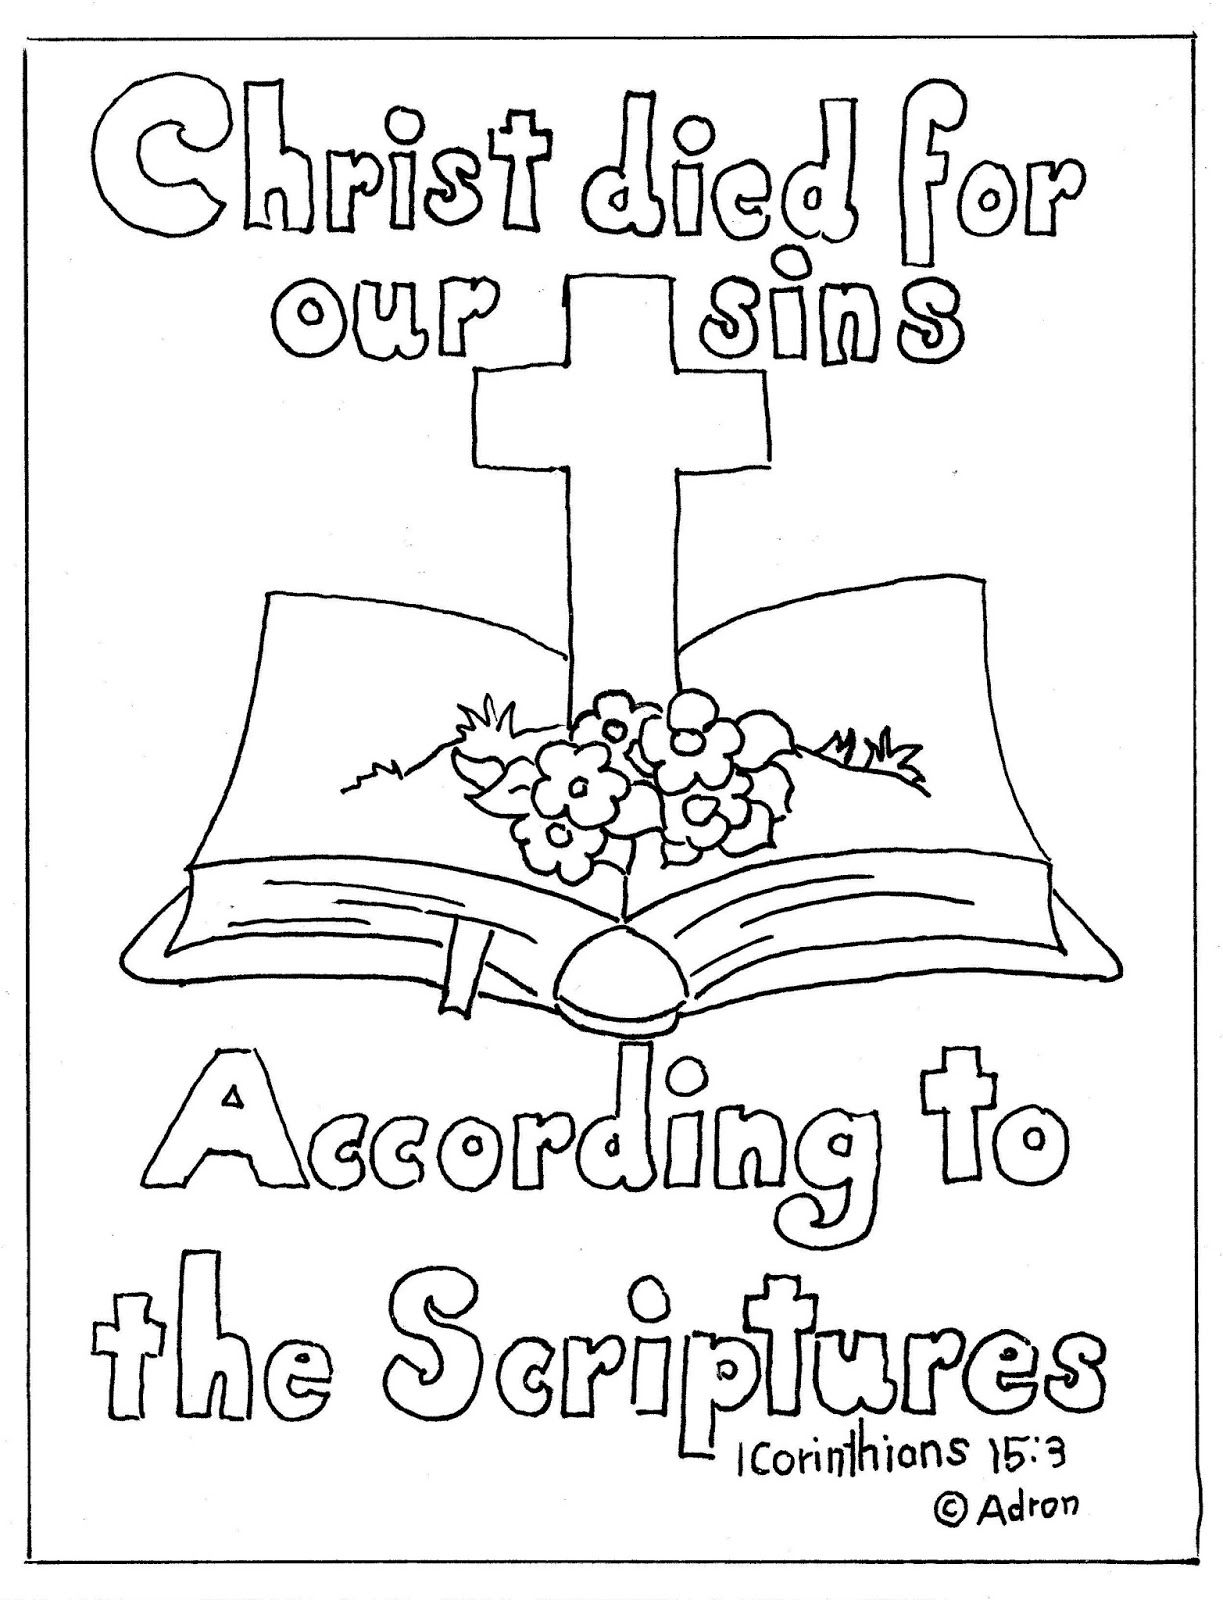 Christian coloring page | Coloring Pages | Pinterest | Stenciling